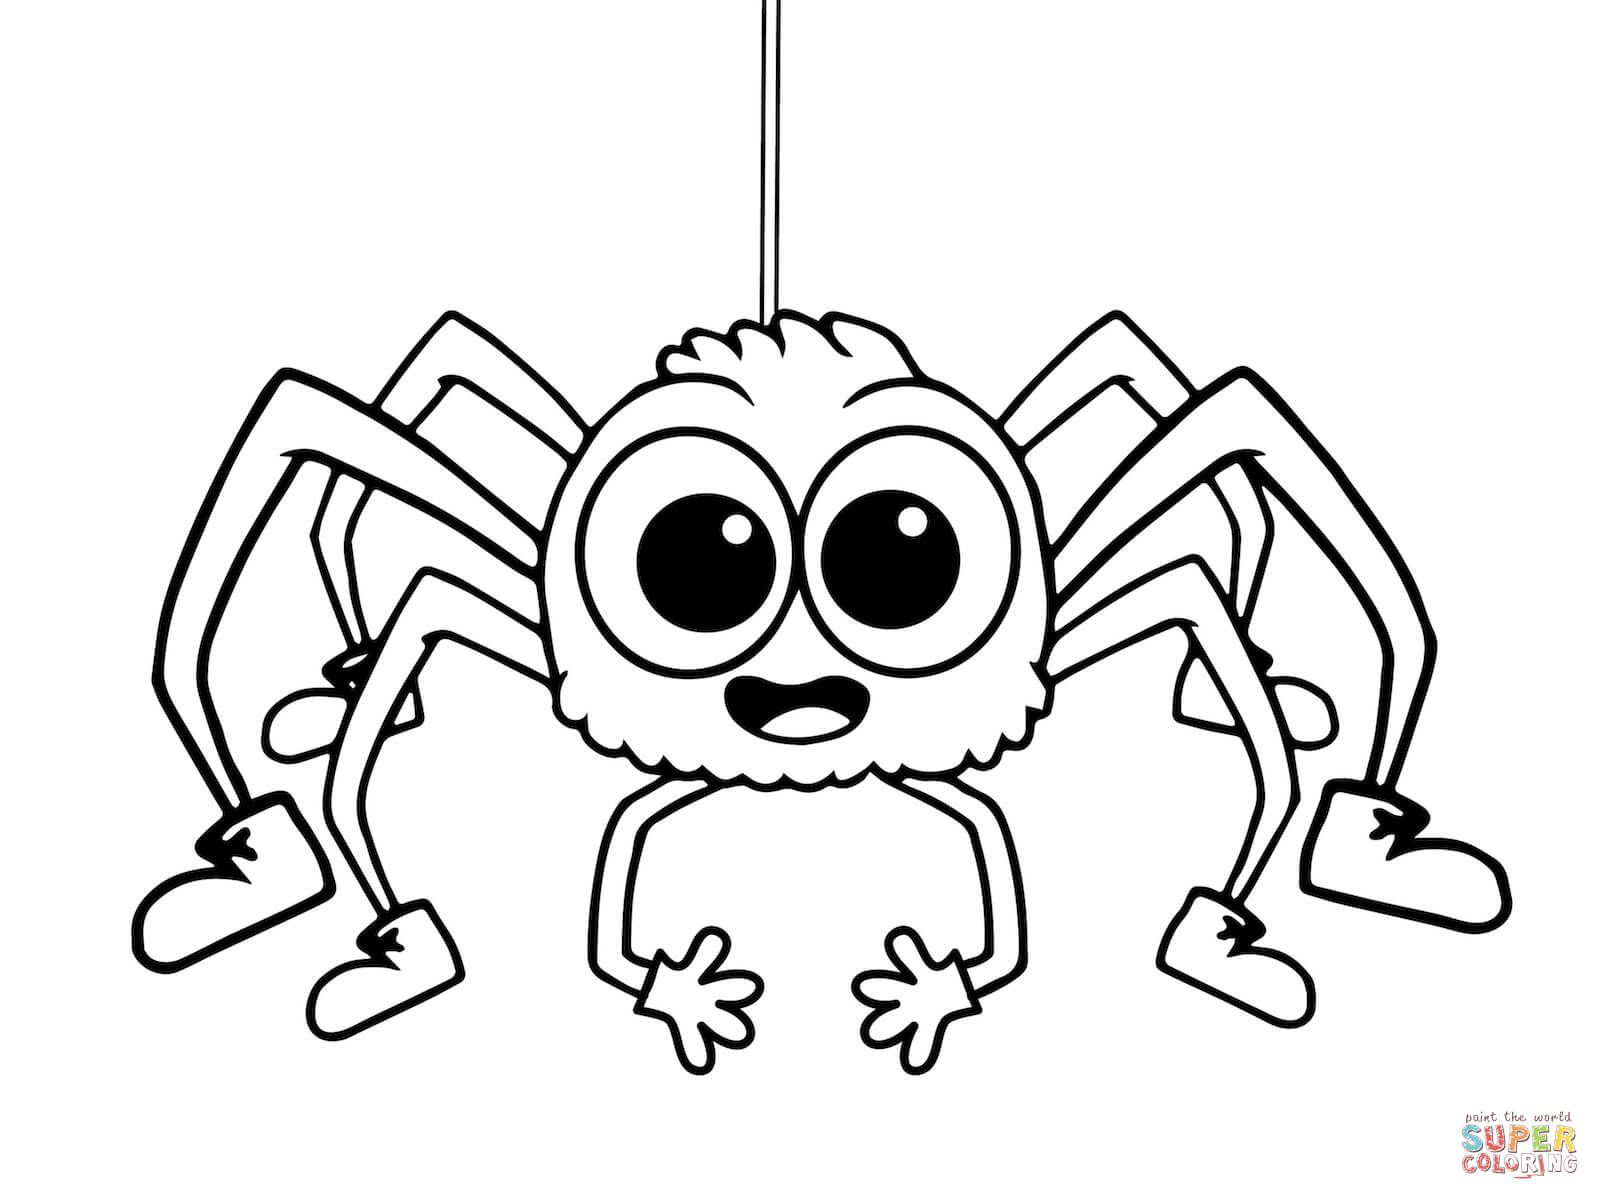 Pages animal crafts pinterest coloring caves and coloring - Incy Wincy Spider Coloring Page From Itsy Bitsy Spider Category Select From 24104 Printable Crafts Of Cartoons Nature Animals Bible And Many More